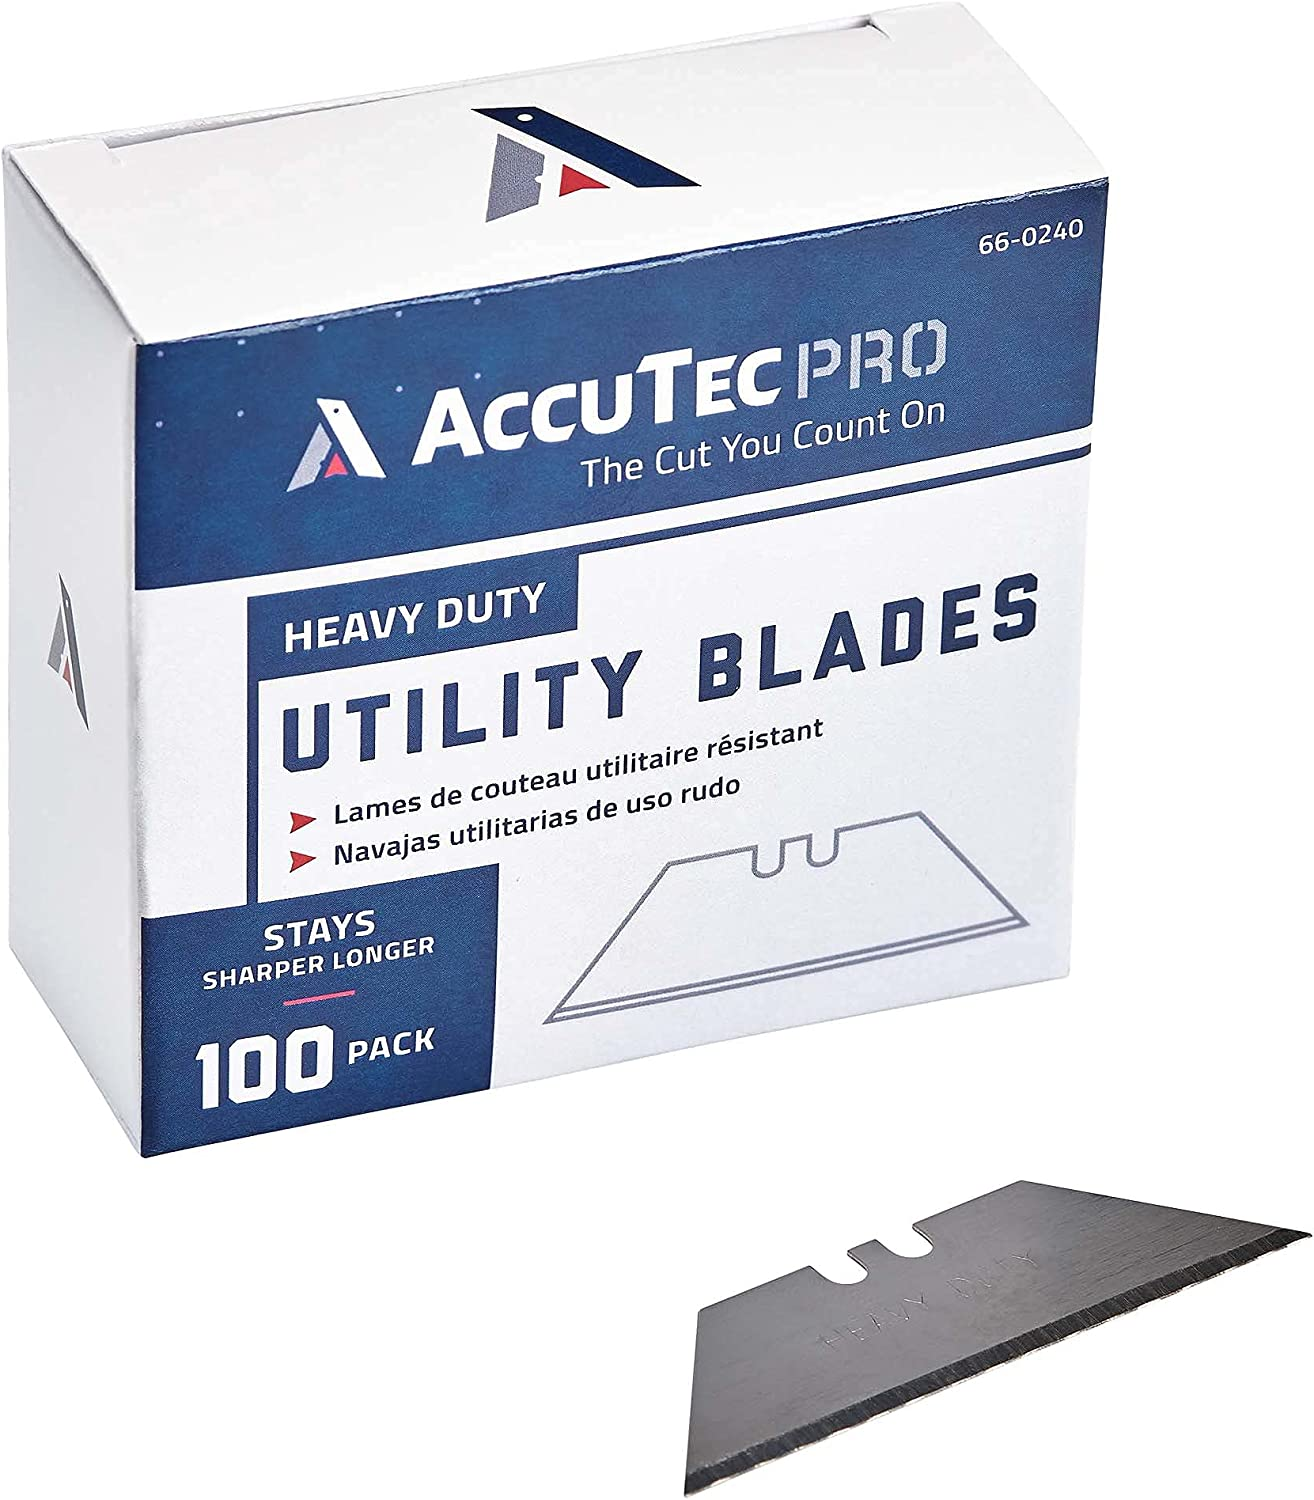 AccuTec Pro 2-Notch Utility Knife Blades 100-Pa Dispenser Max 74% OFF - Credence with